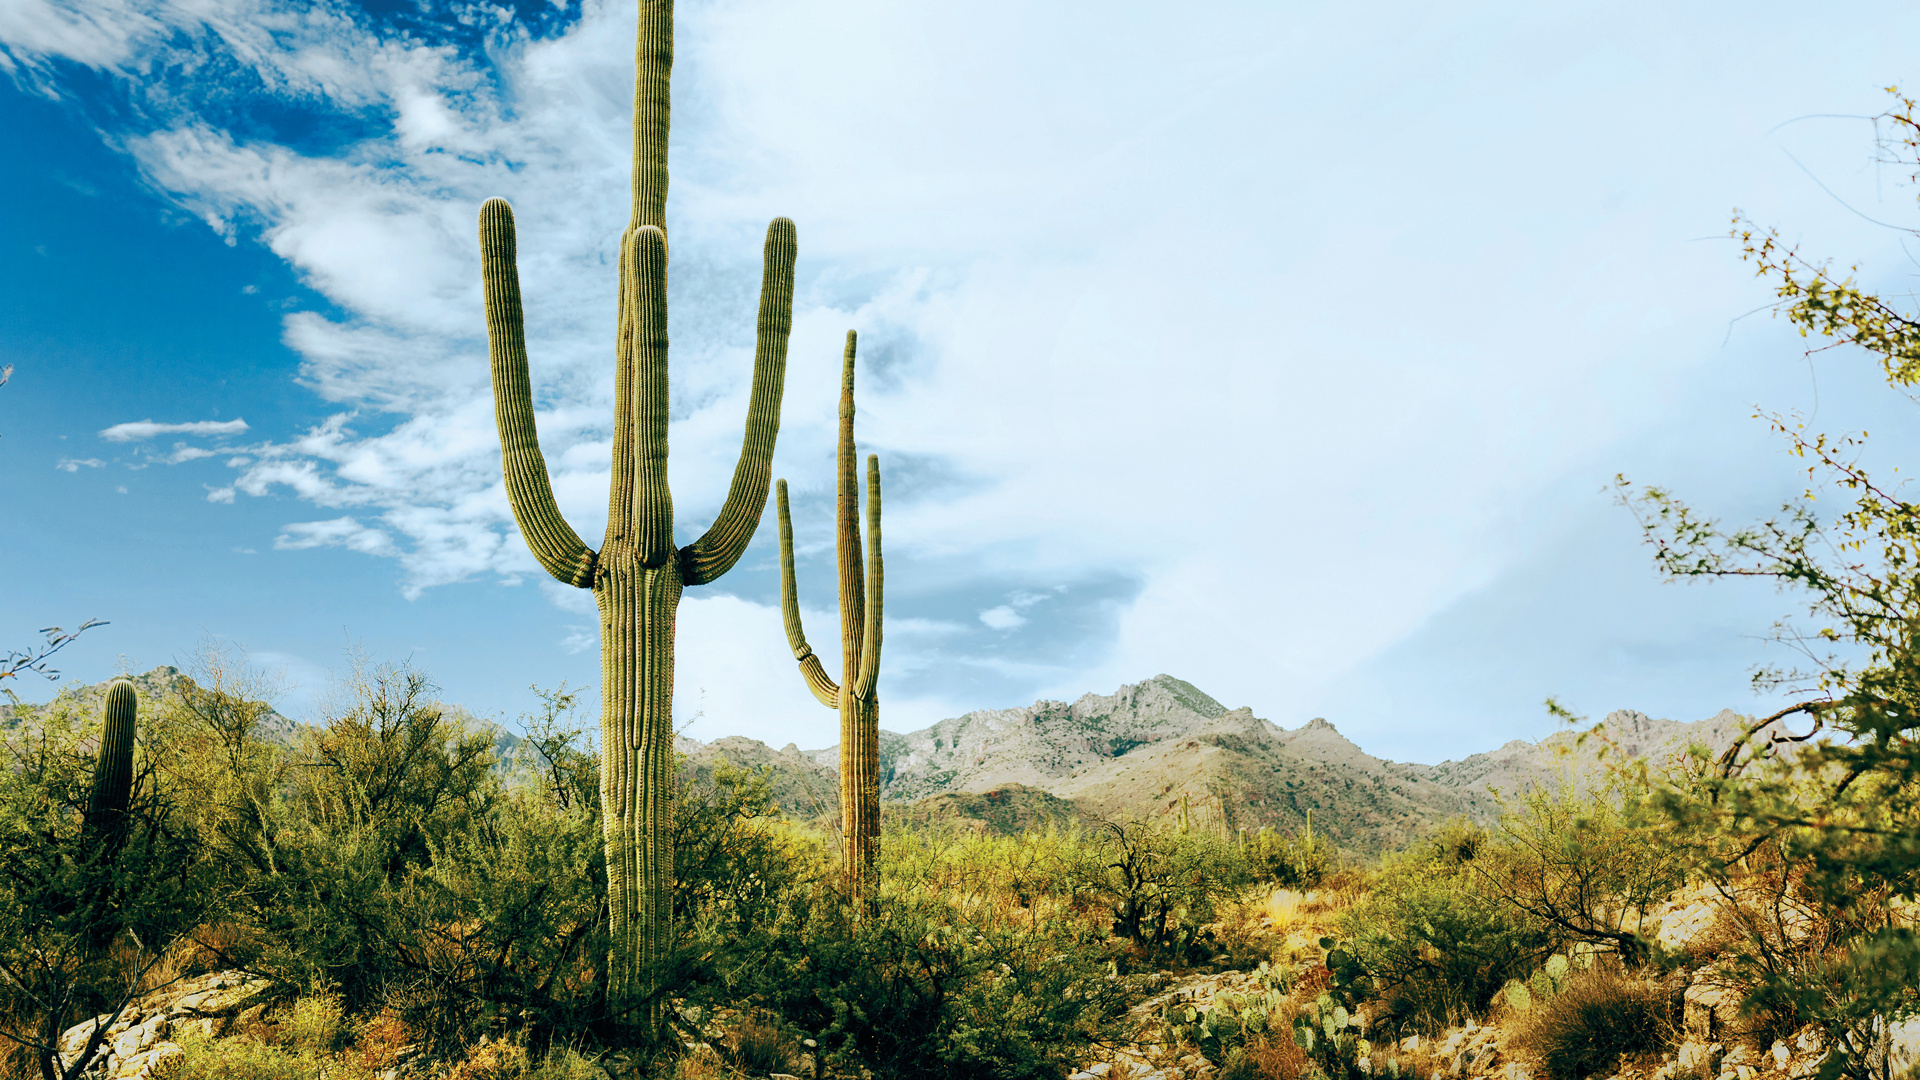 Tucson, Arizona, a UNESCO City of Gastronomy